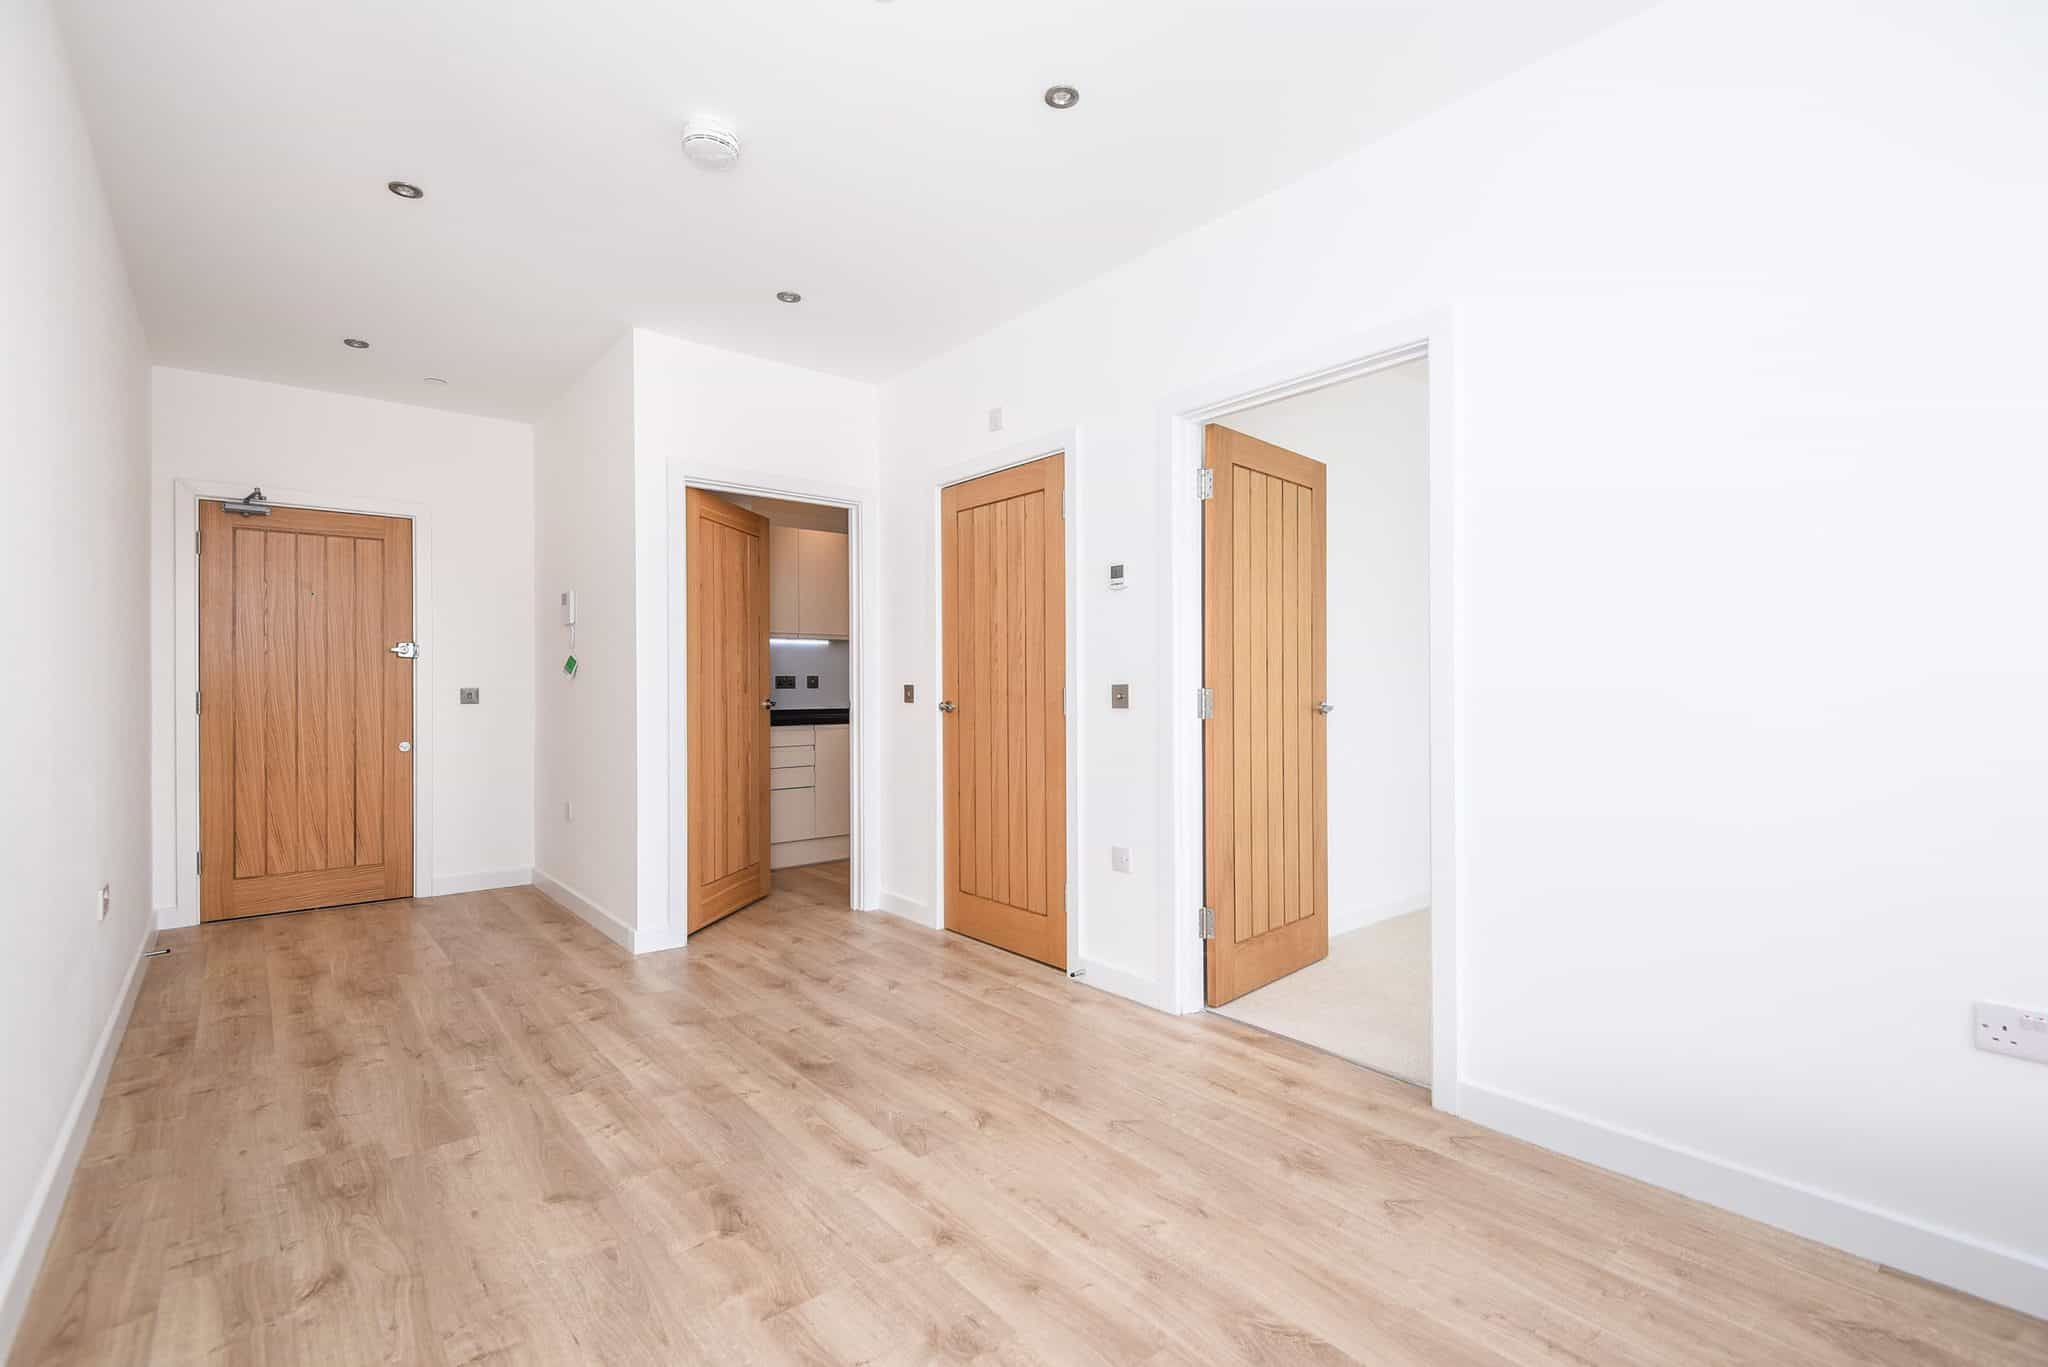 Normandy House Hemel Hempstead​ Interior: Commercial to Residential Property Conversion Apartment